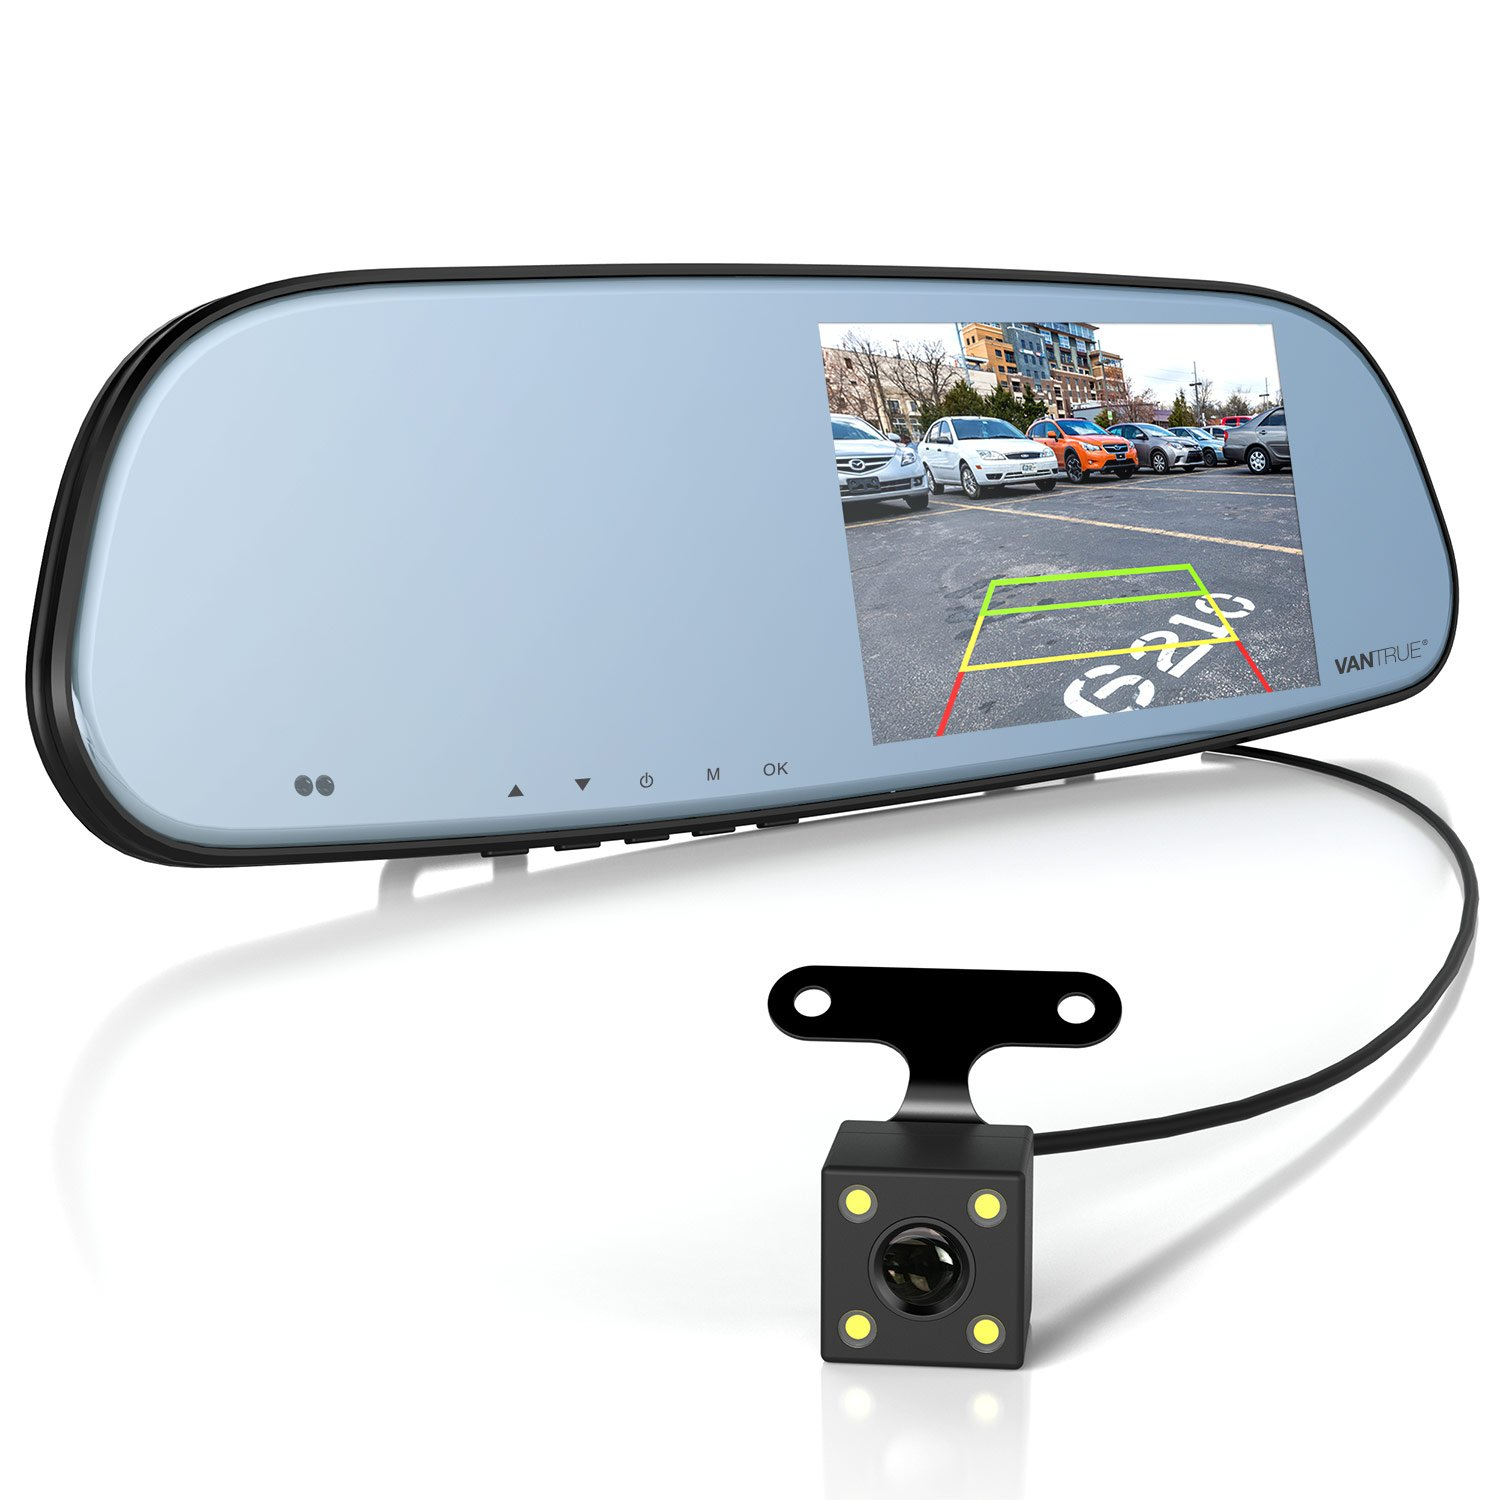 Vantrue N3 Dual Dash Cam Rearview Mirror Backup Camera 5'' IPS Touch Screen 1080P Front and Rear Dash Cam With Parking Assistance and IP67 Waterproof Reverse Camera for Trailer, LLL Night Vision by VANTRUE